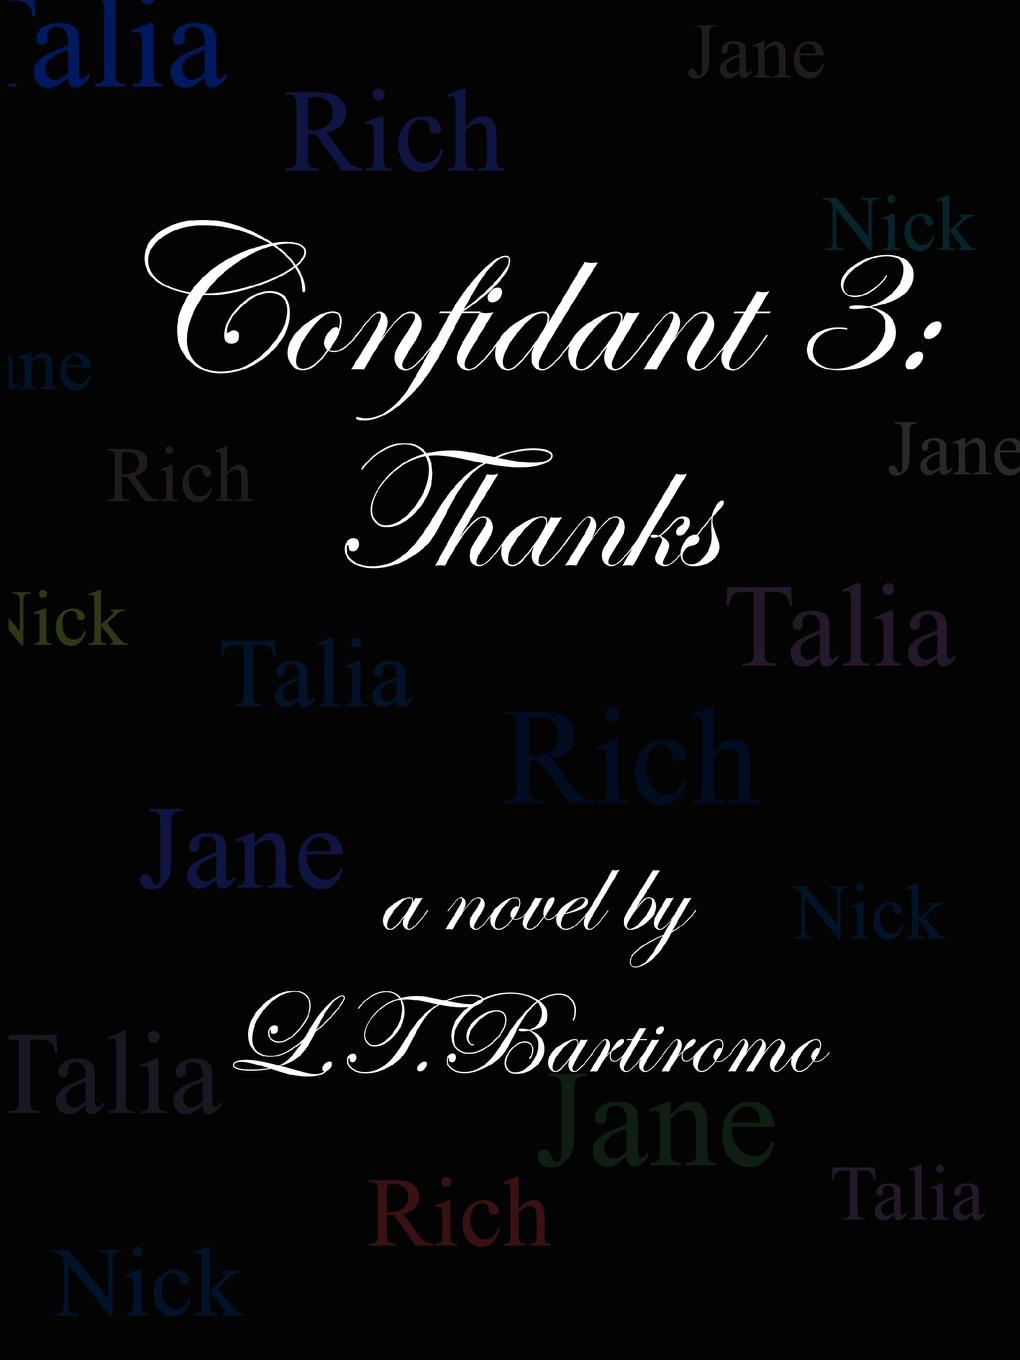 Leslie Bartiromo Confidant 3. Thanks the grudgebearer trilogy book 2 oathkeeper